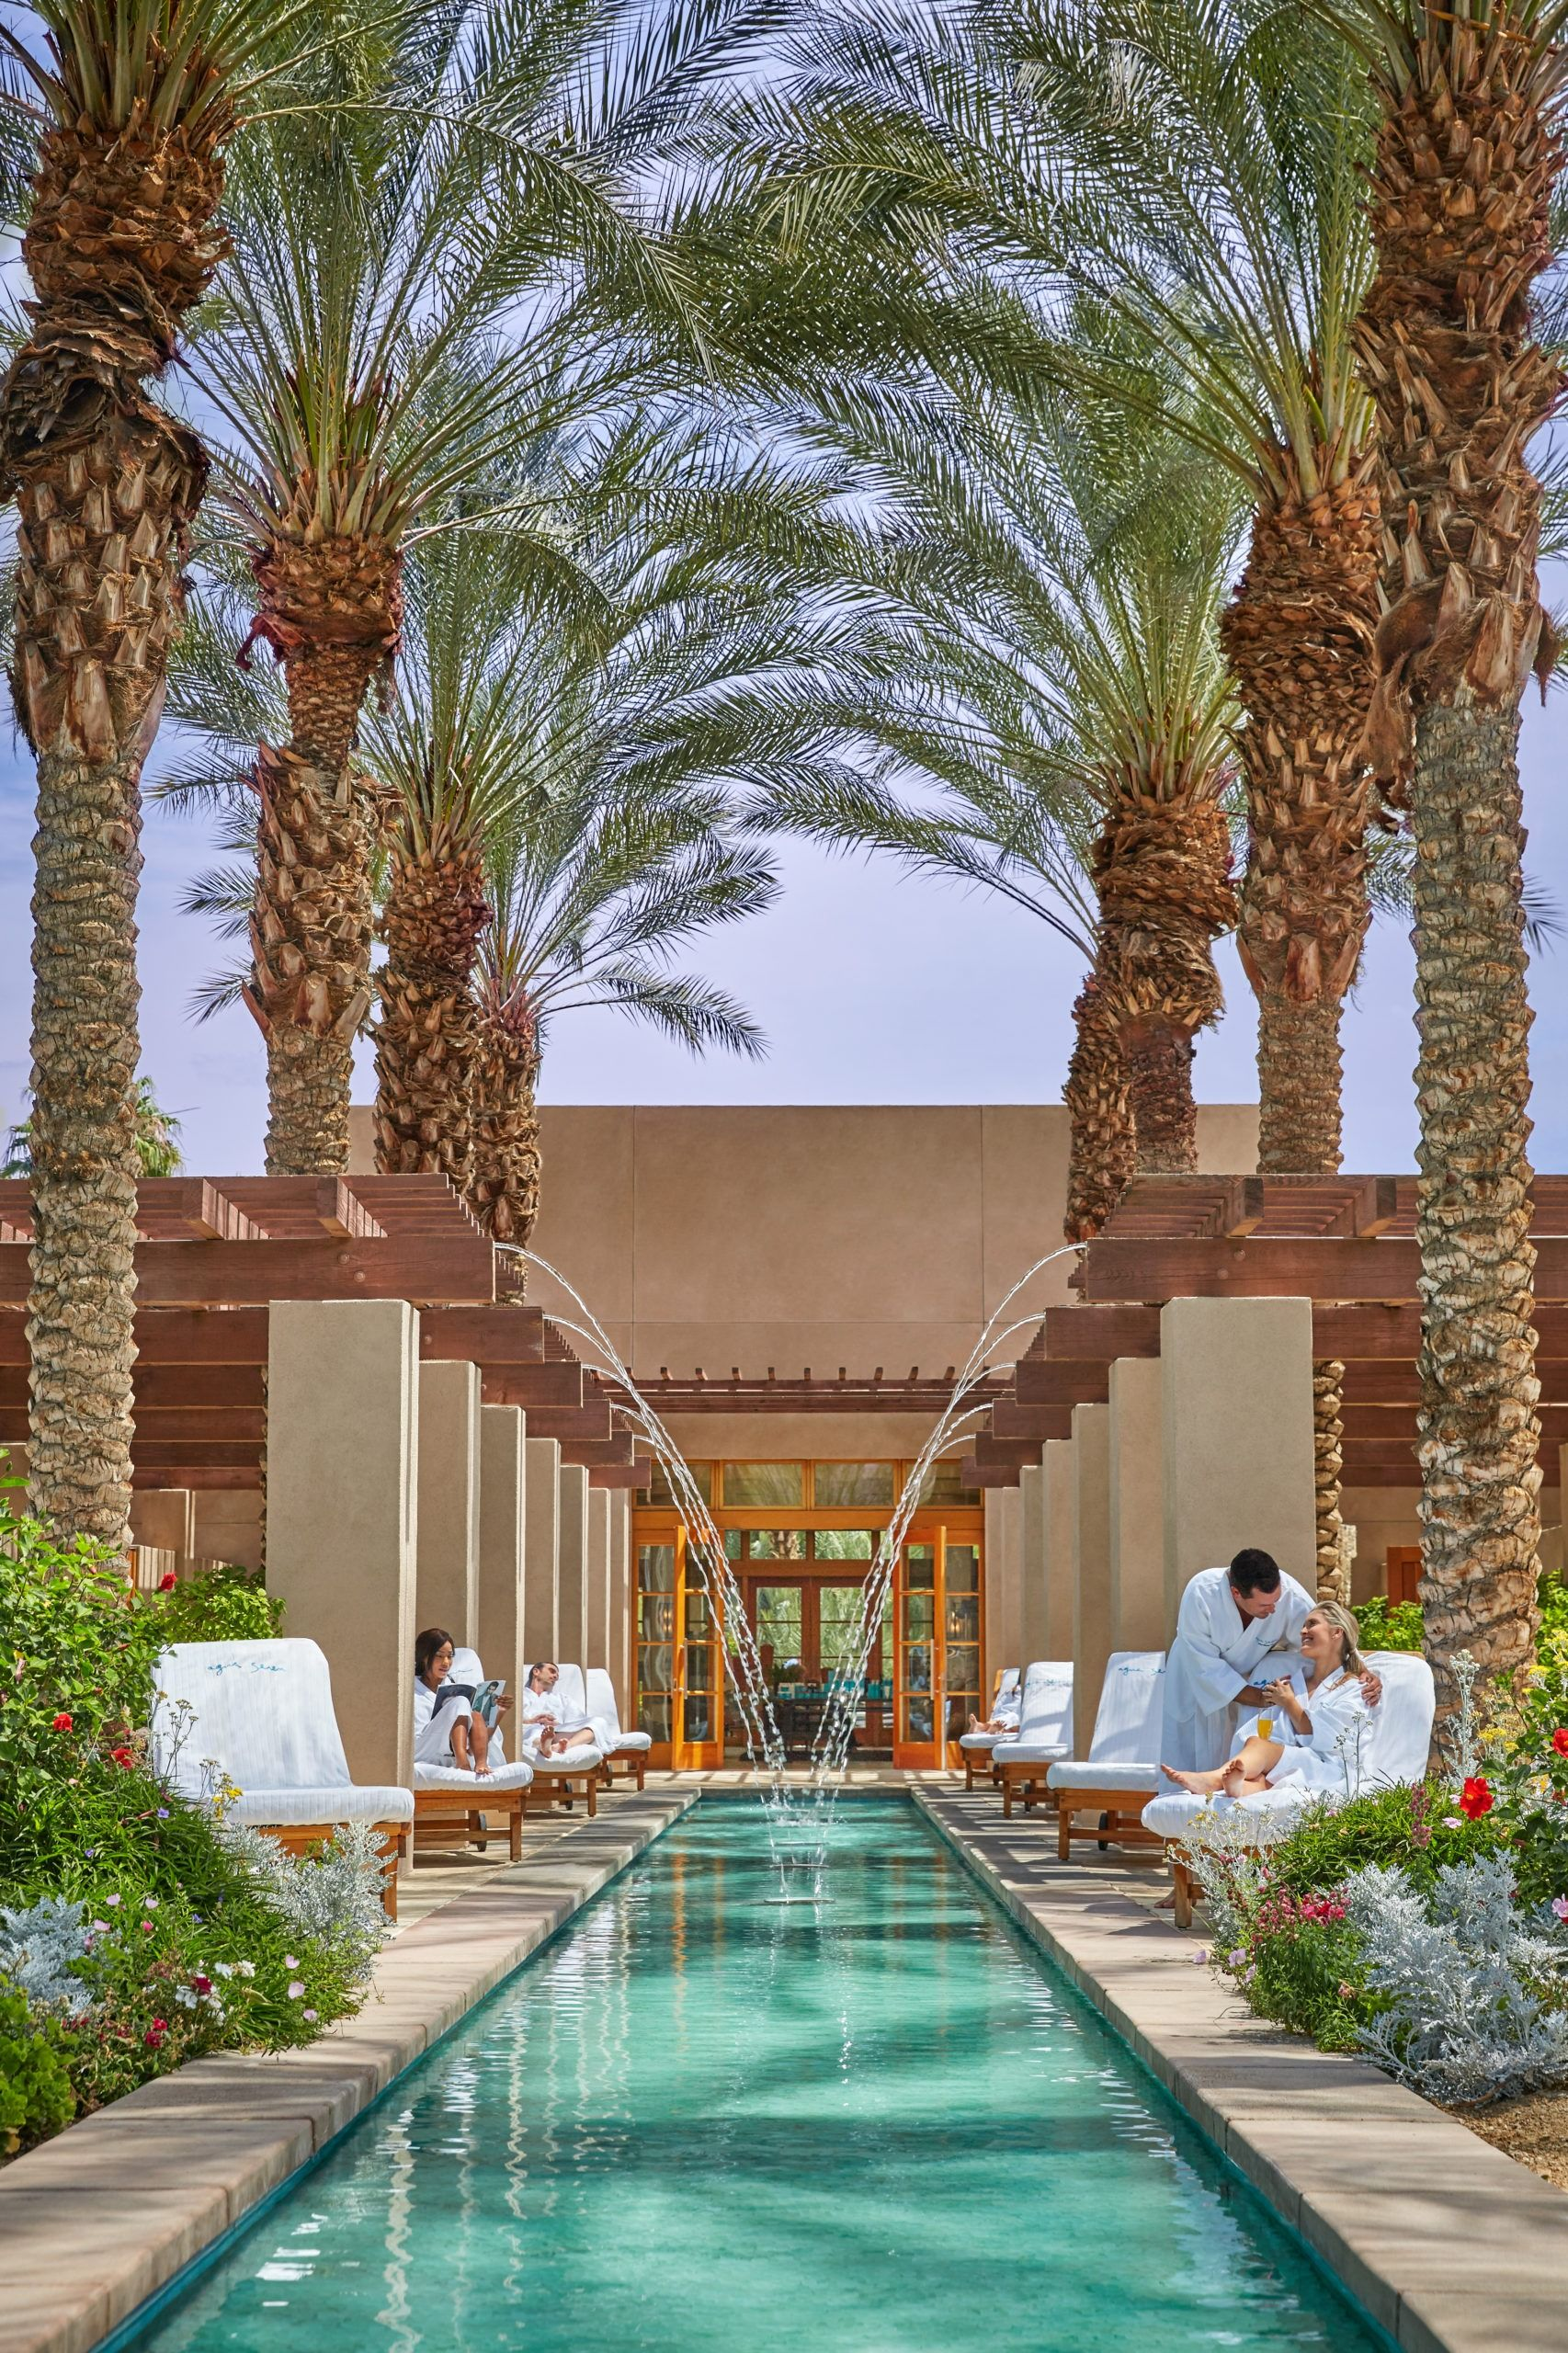 A list of the 12 best Palm Springs hotels from resorts to boutique properties for your next desert getaway. La Jolla Mom #palmsprings #palmspringshotels #springbreaktrips #palmspringsresort